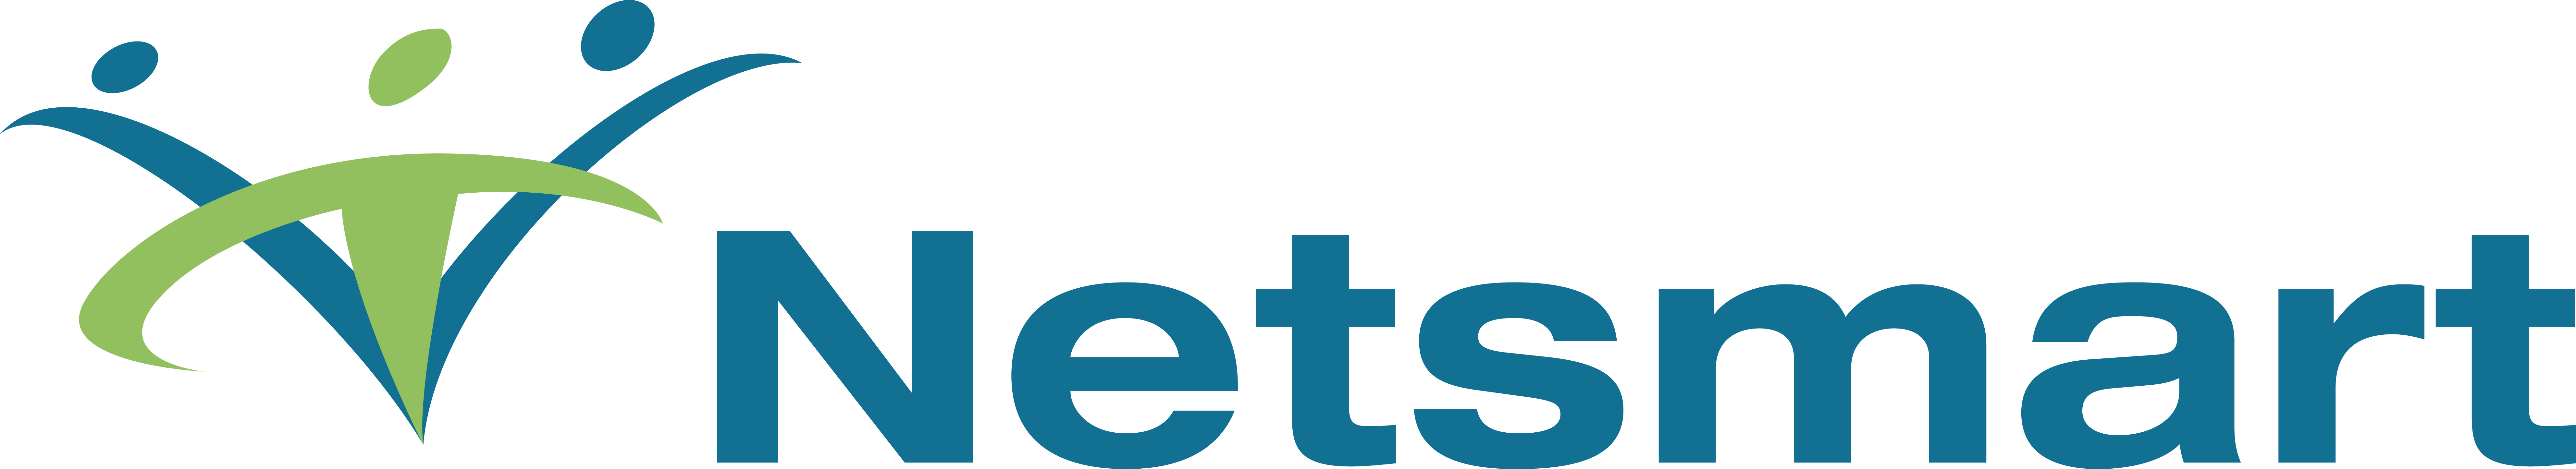 Valued Care Consulting Services Netsmart Logo Jpeg